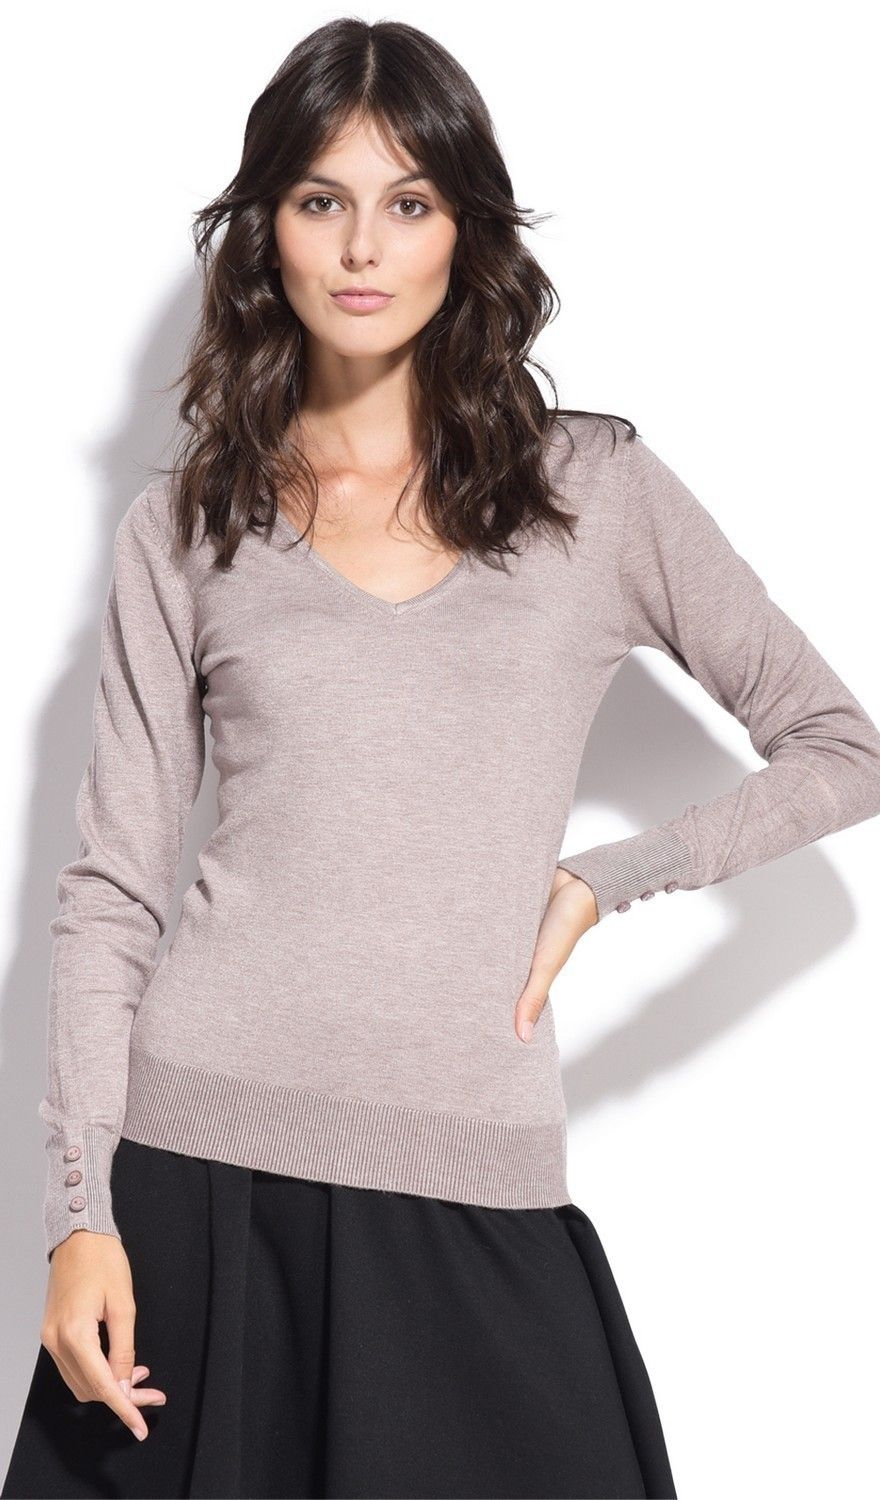 C&JO V-neck Sweater with Buttoned Sleeves in Beige